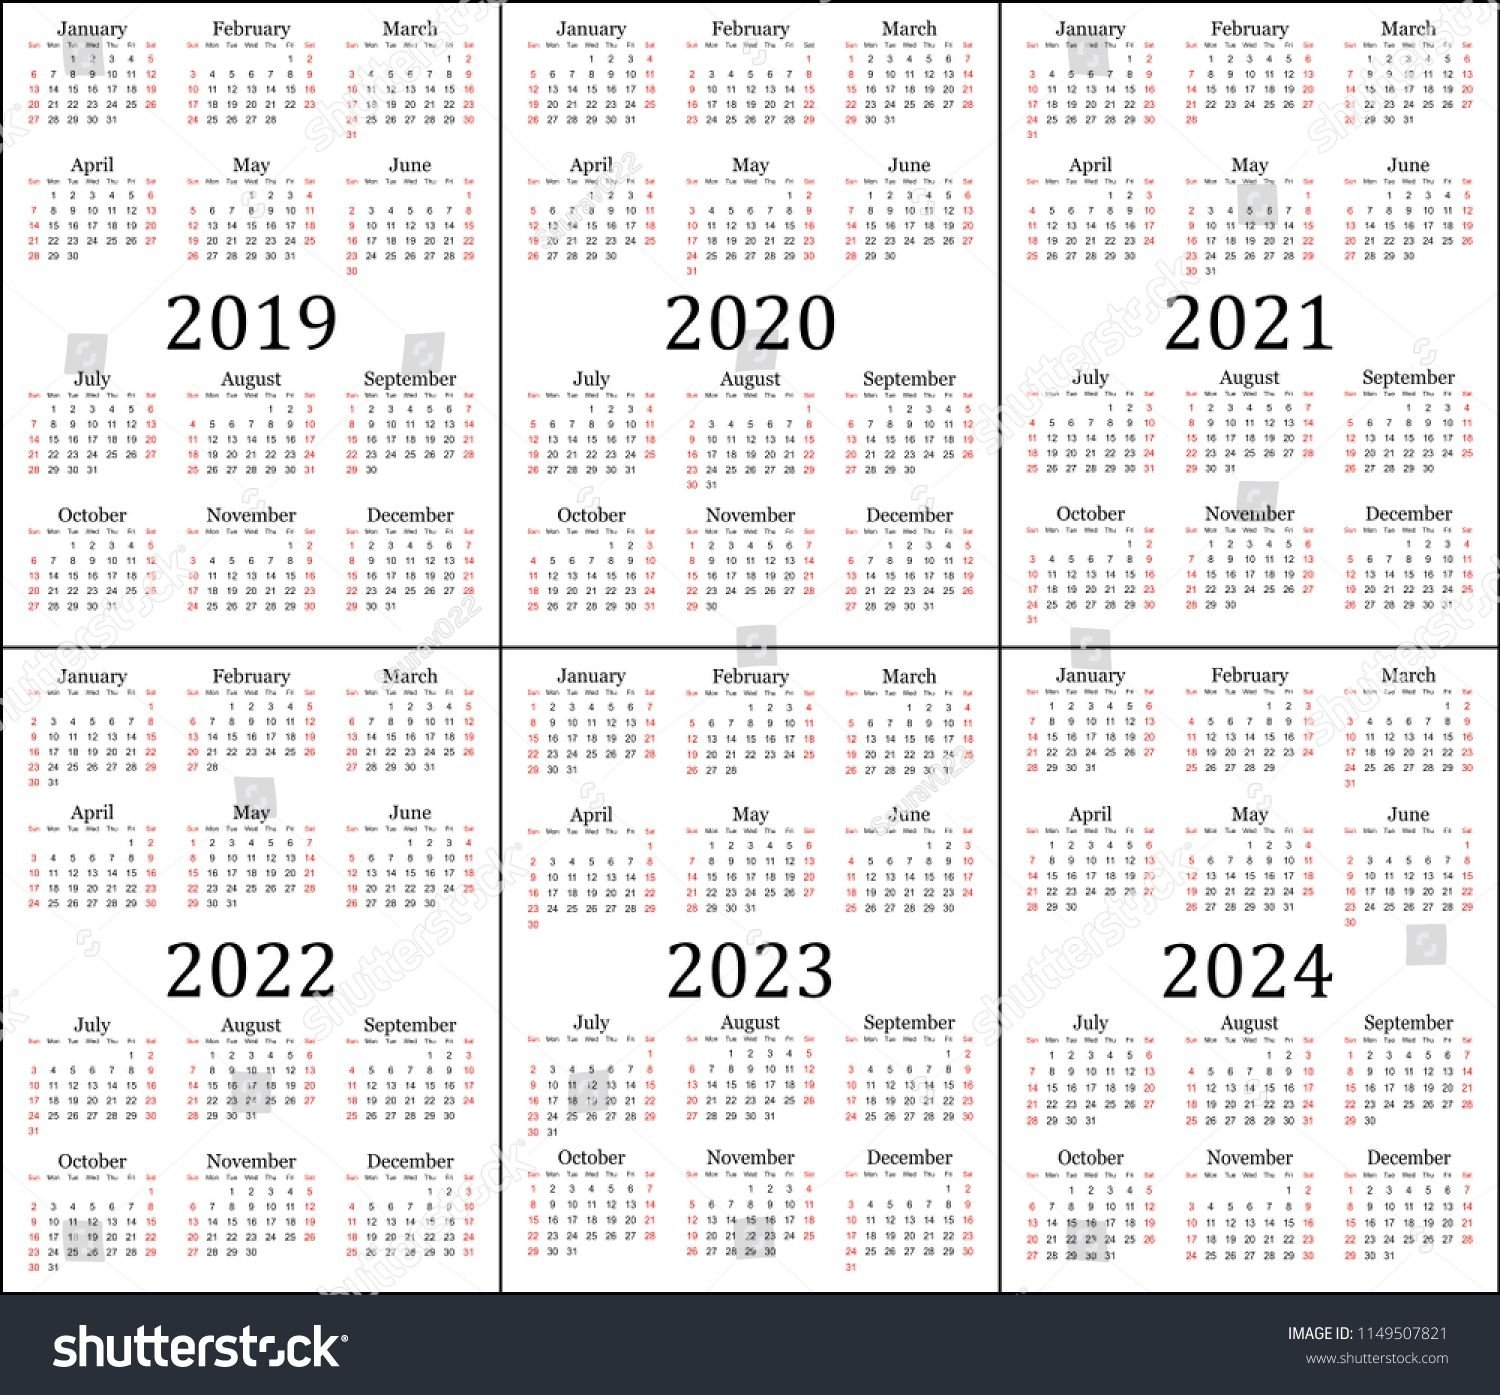 Five Year Calendars - Example Calendar Printable within Yearly Calendars 2021 To 2025 Graphics